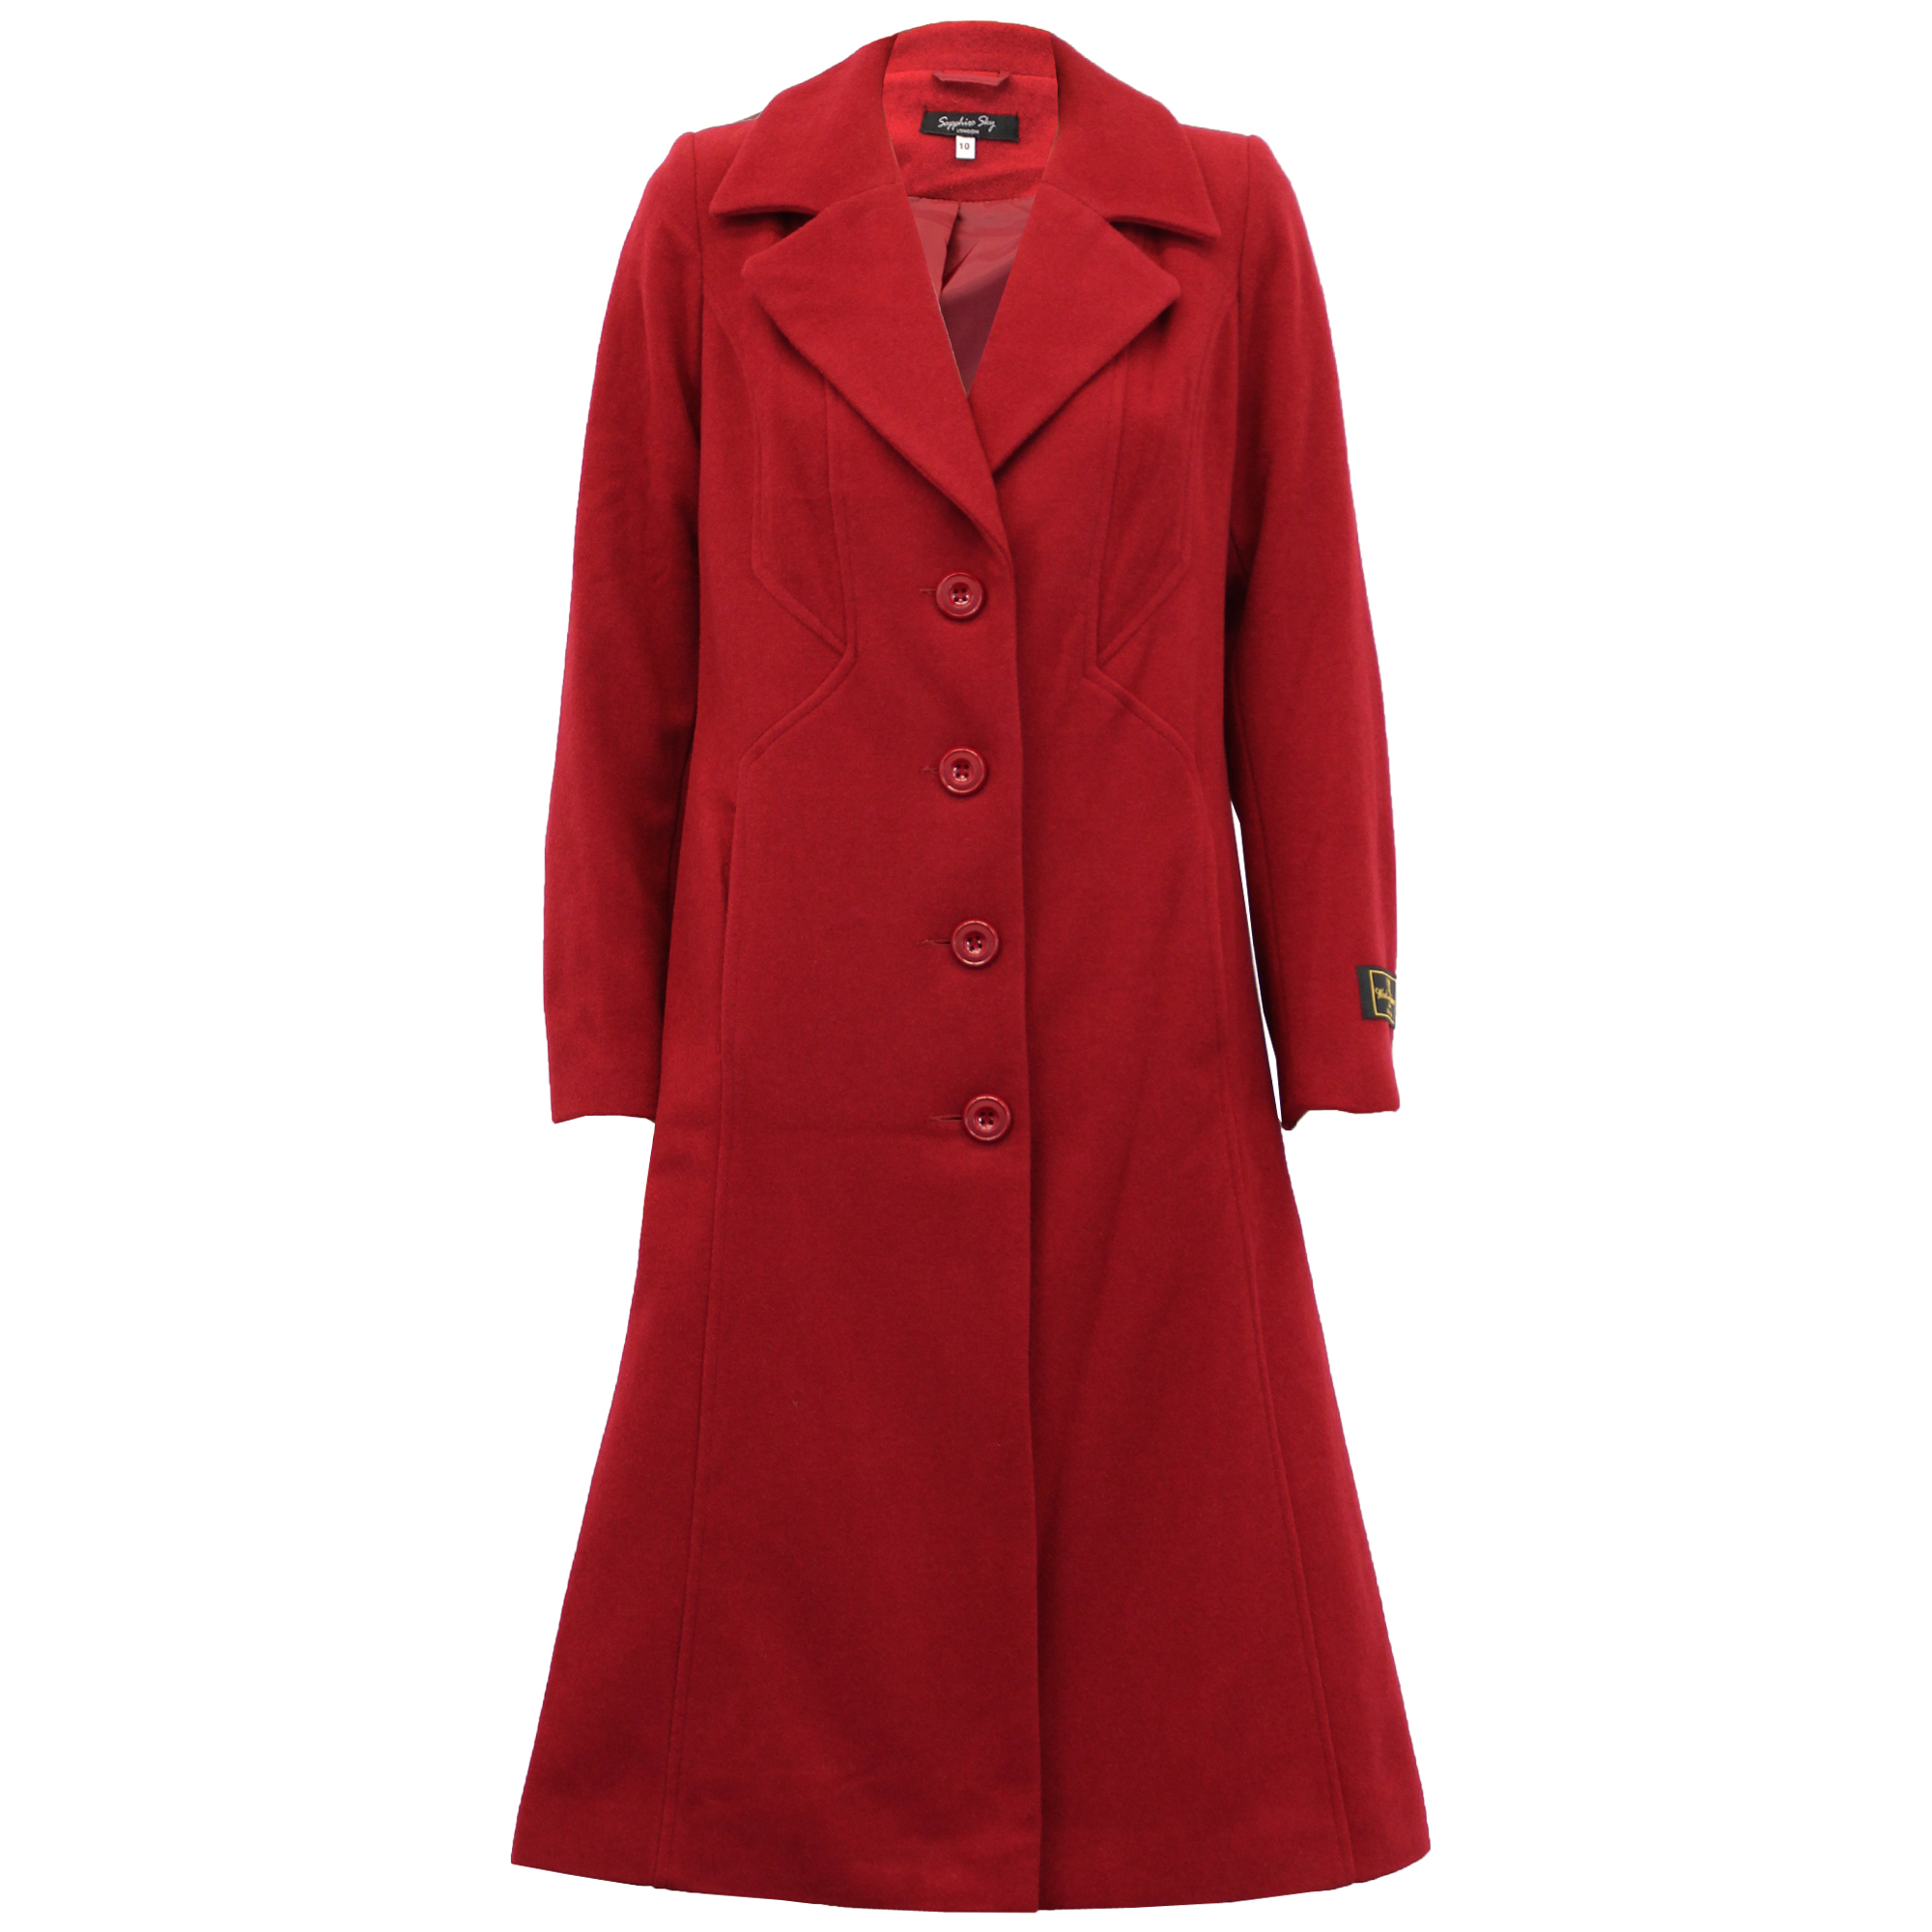 Ladies Wool Cashmere Coat Women Jacket Outerwear Trench ...